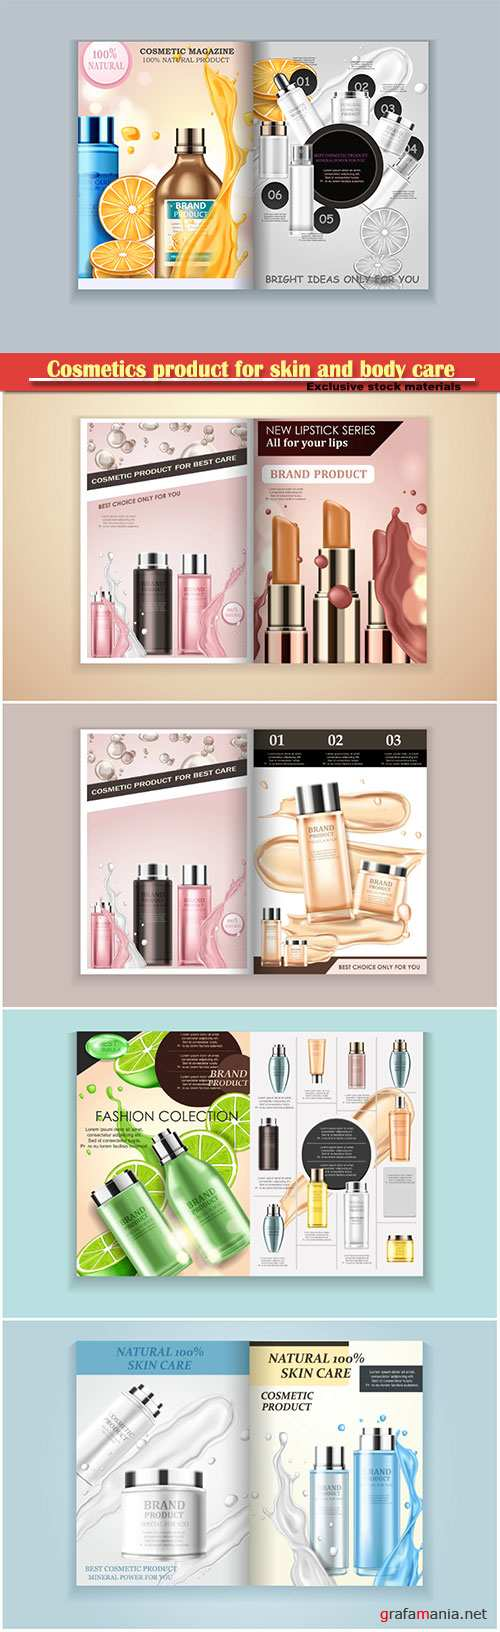 Cosmetics product for skin and body care vector design